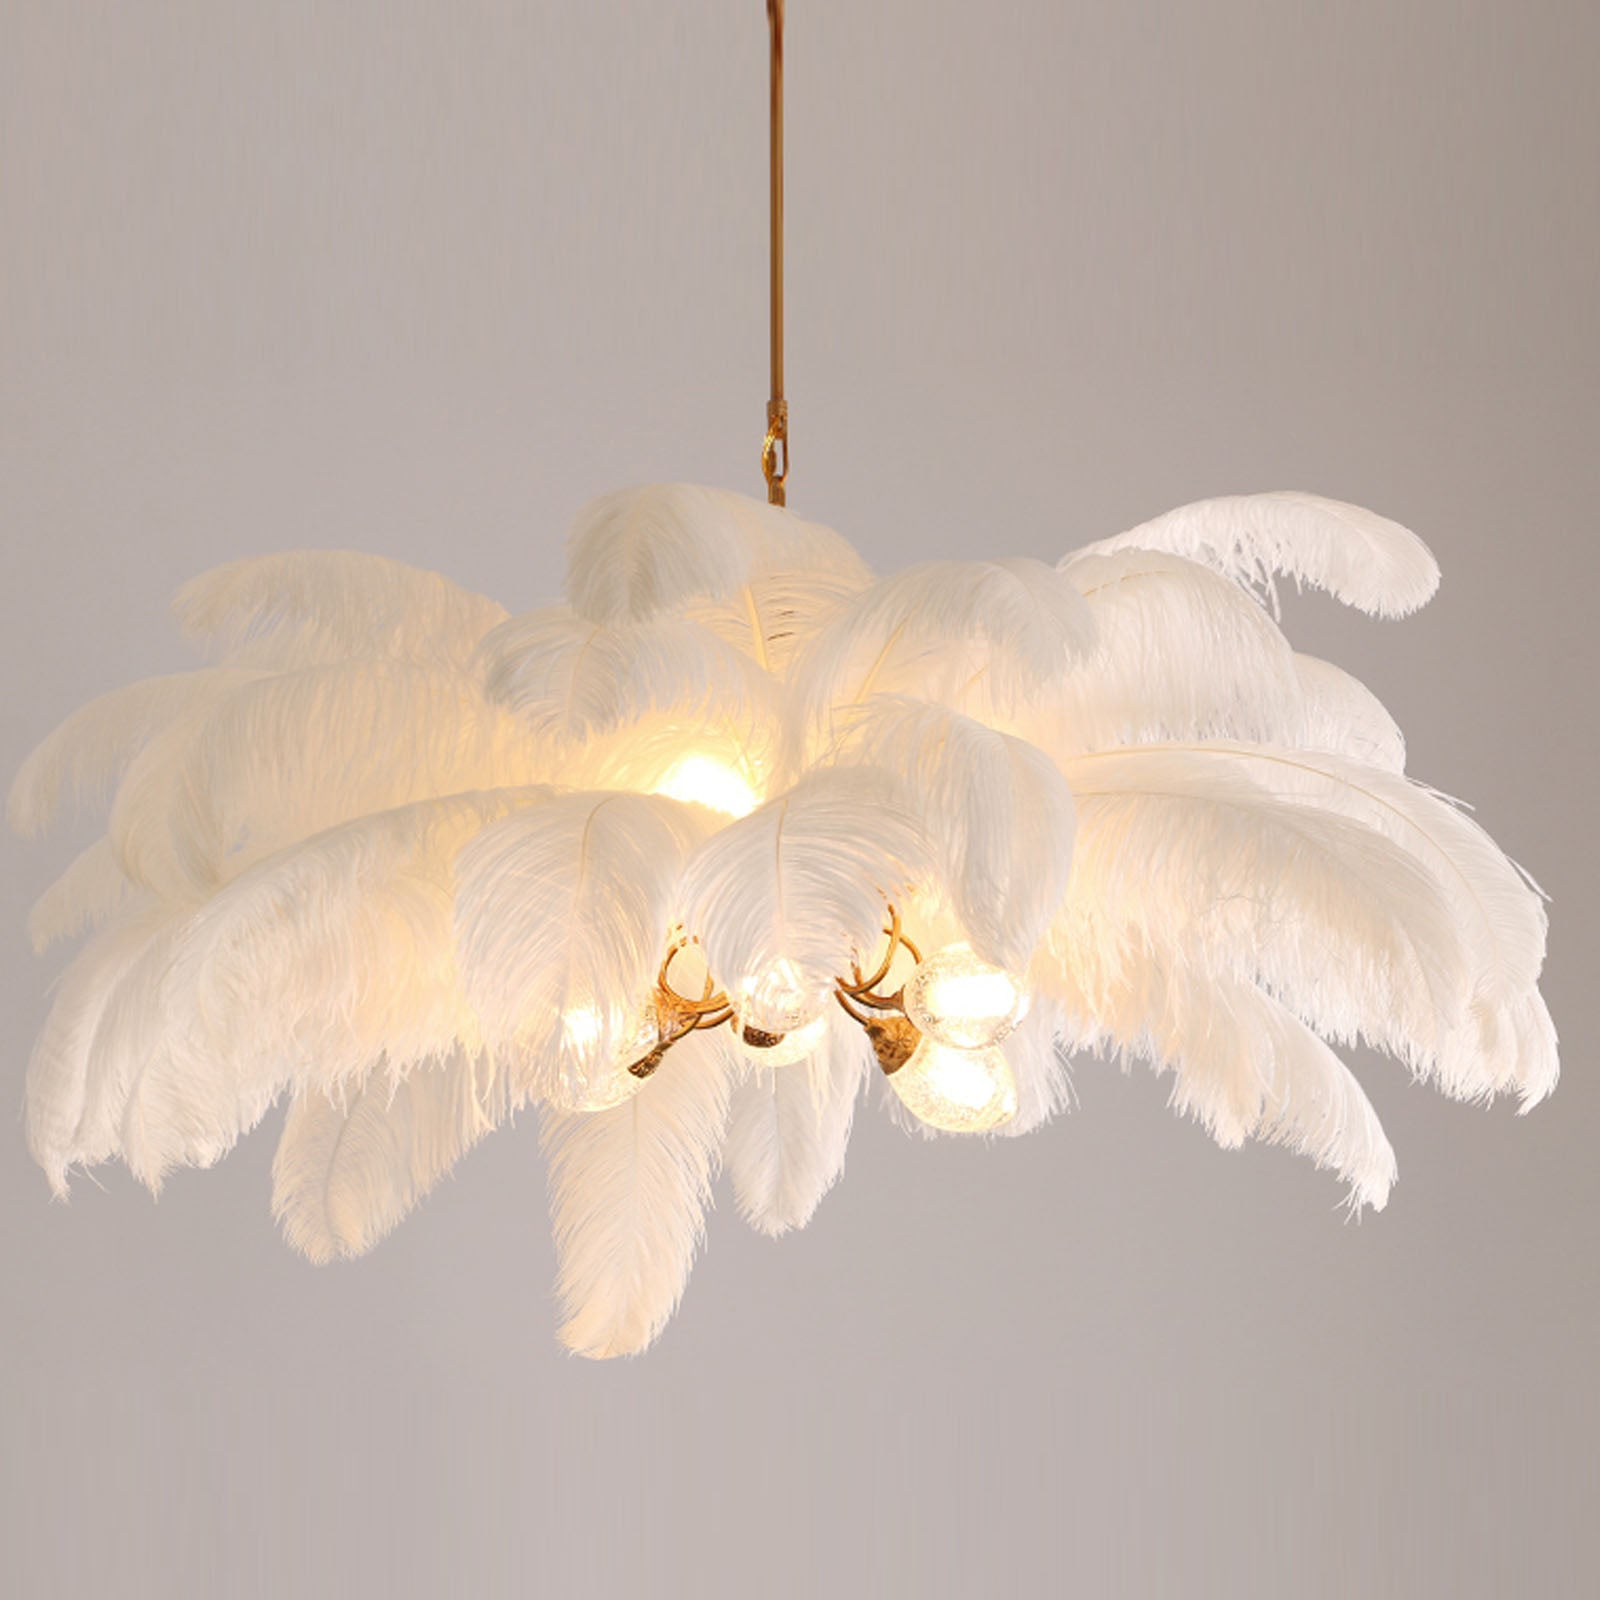 Pre-order 40 days delivery fly pendent lamp